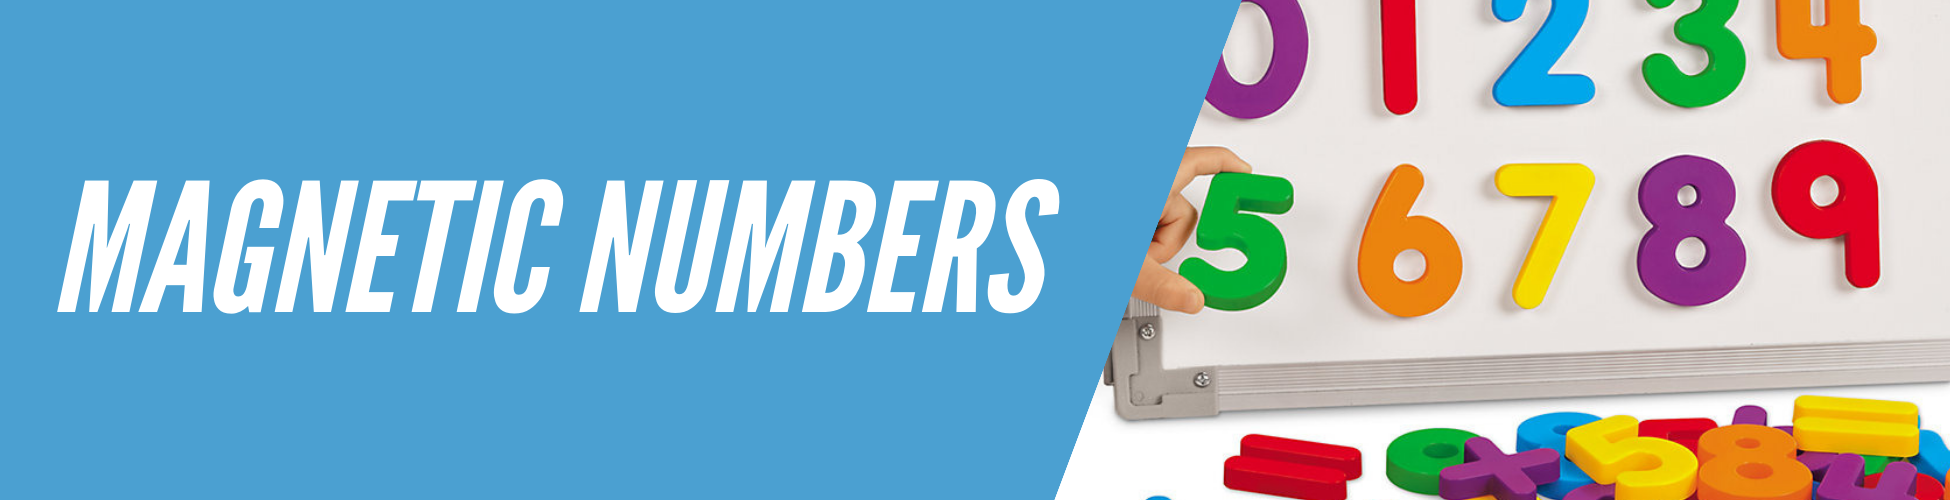 magnetic-numbers-banner-v3.png